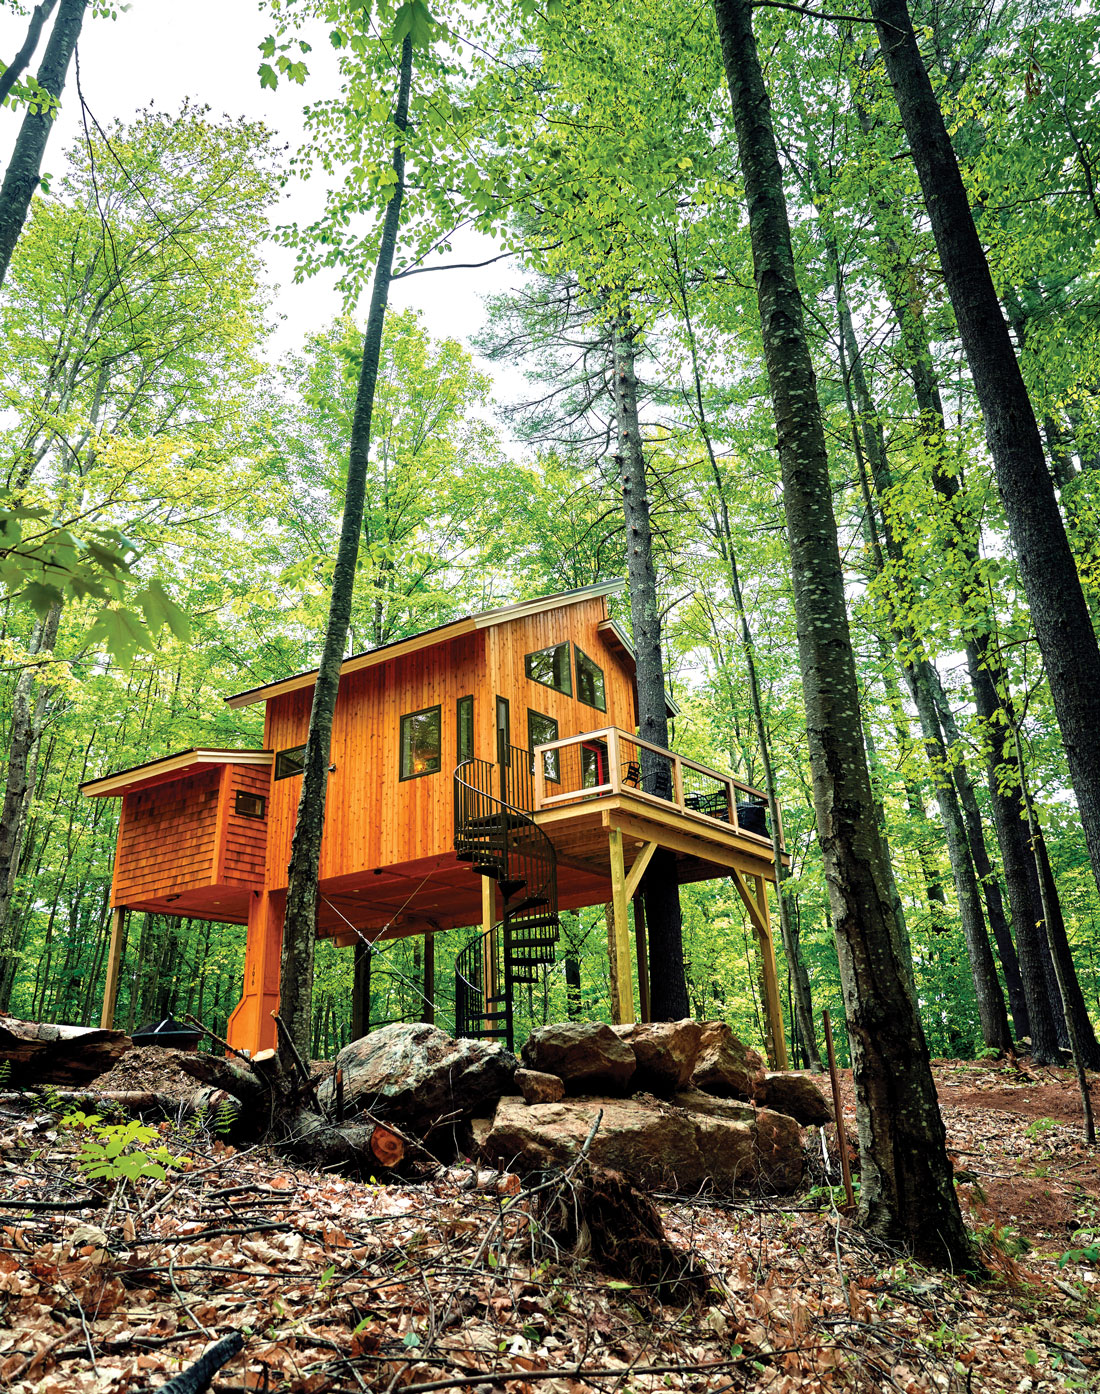 Purposely Lost treehouse in Springvale Maine